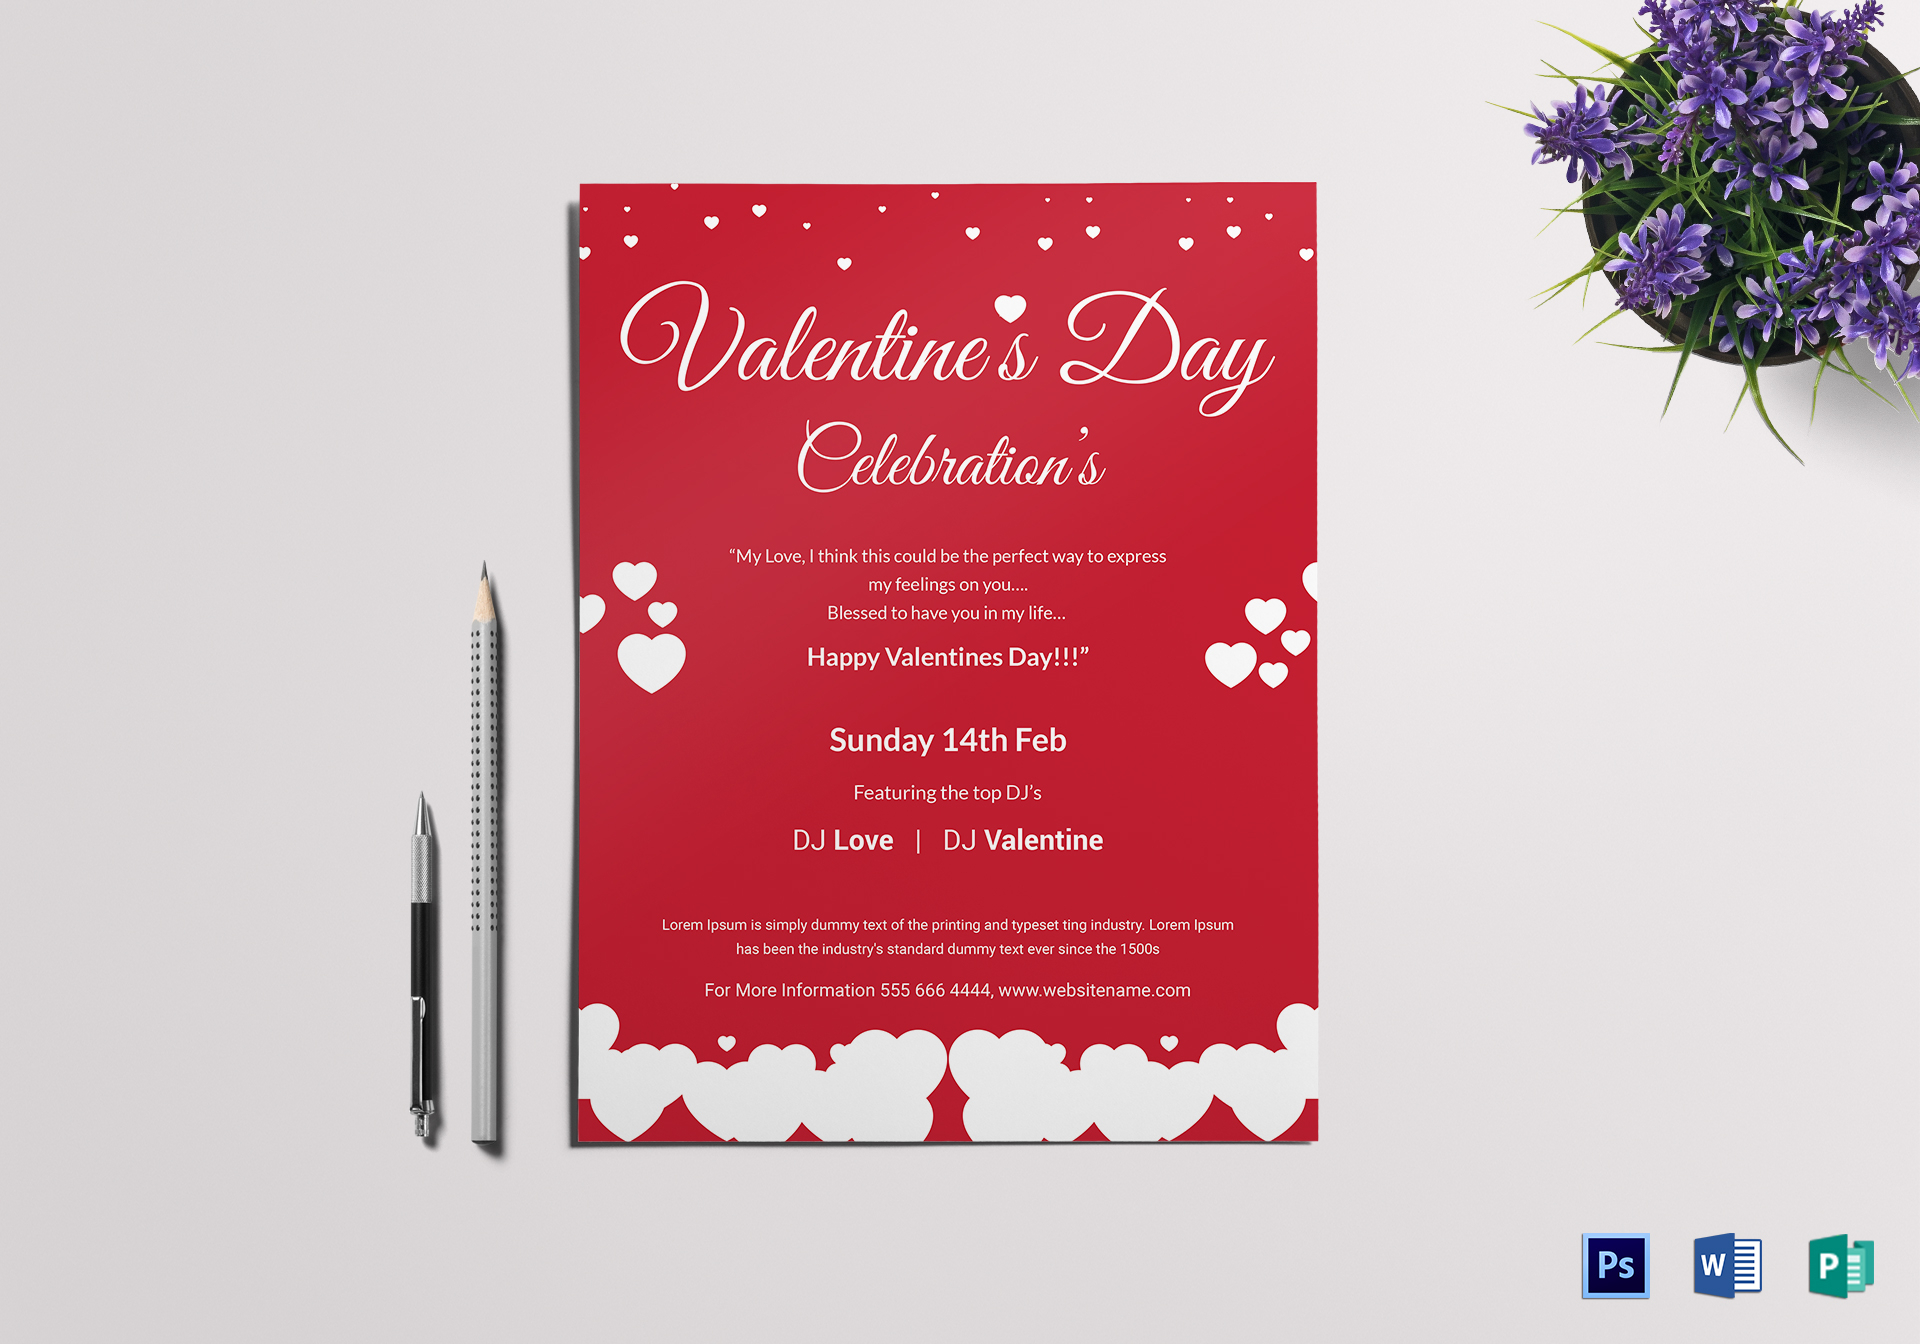 Valentine Day Celebrations Flyer Design Template in PSD, Word, Publisher